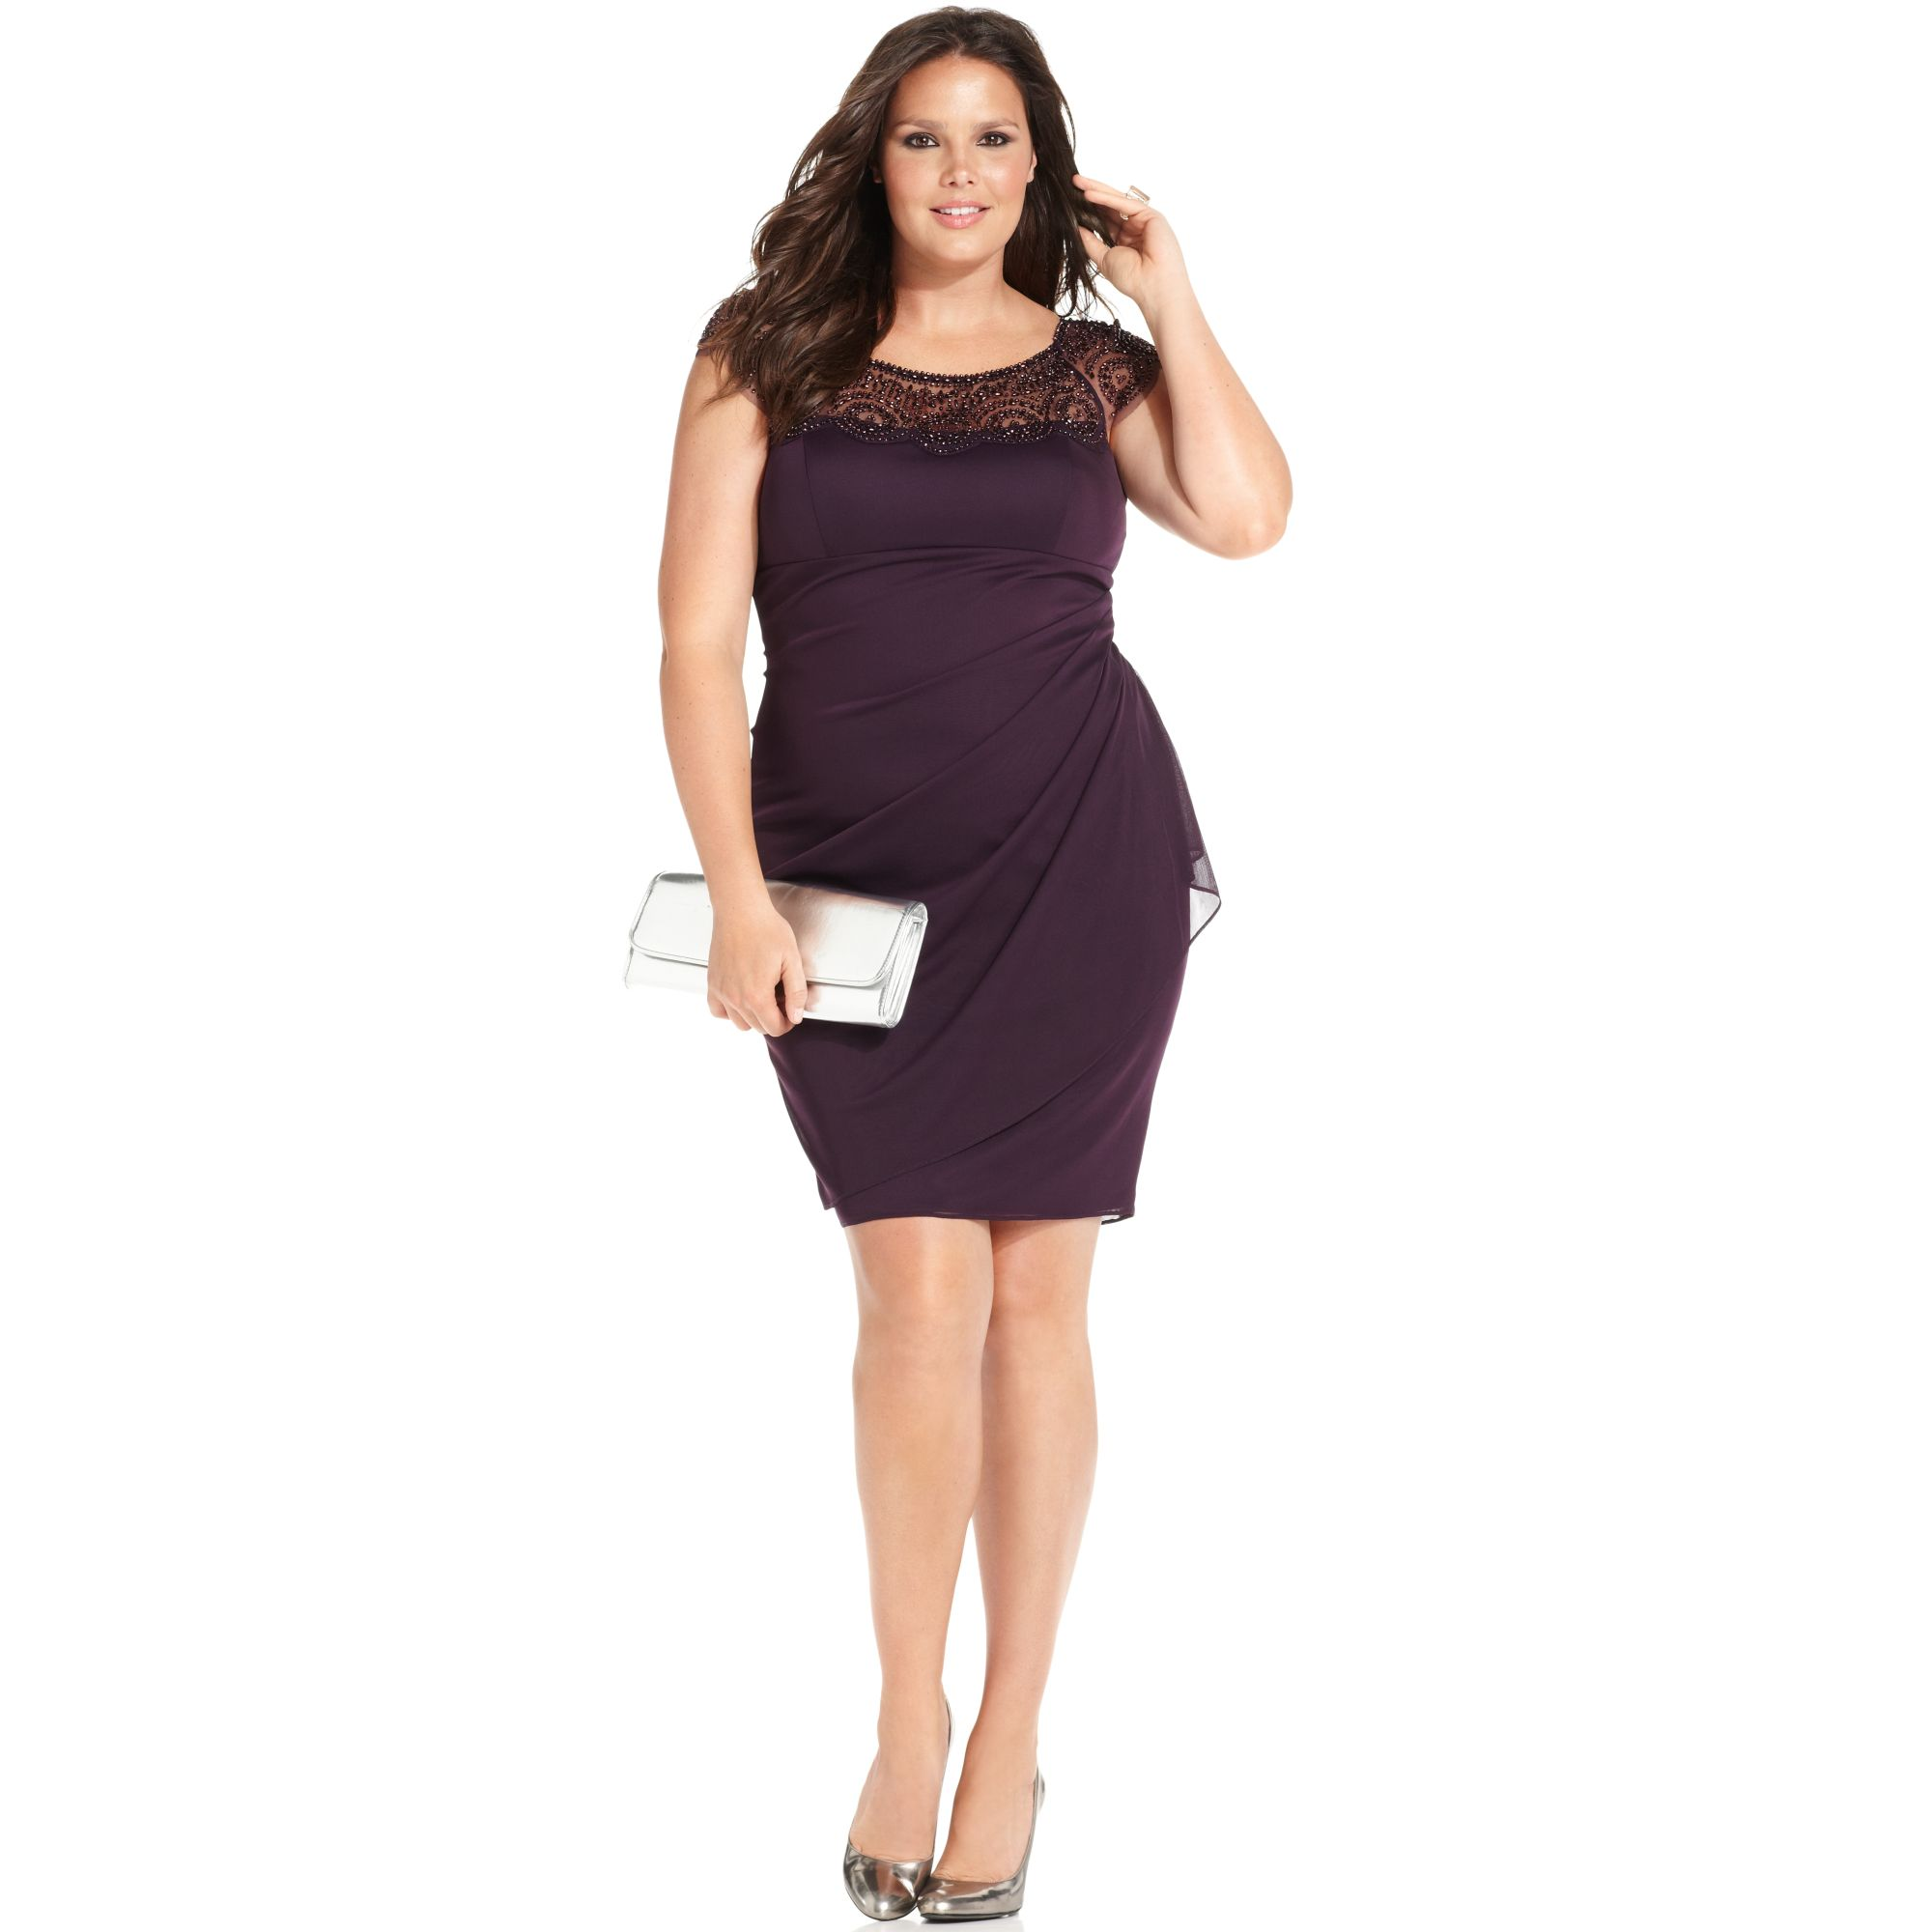 Lyst - Xscape Xscape Plus Size Dress Capsleeve Beaded in Purple